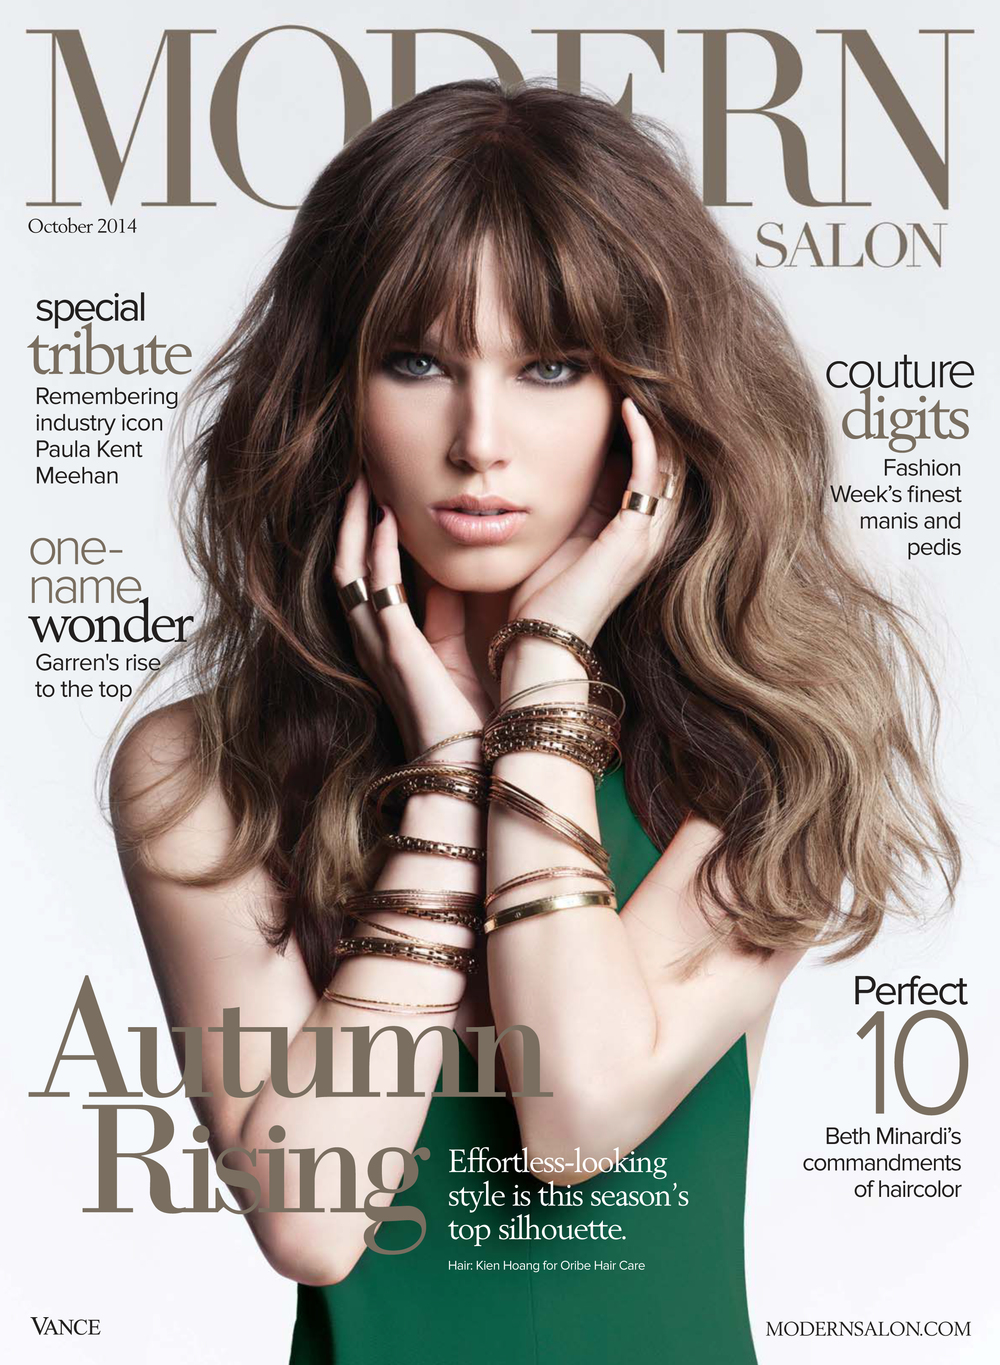 Modern Salon Cover | October Issue | Hair by Kien Hoang